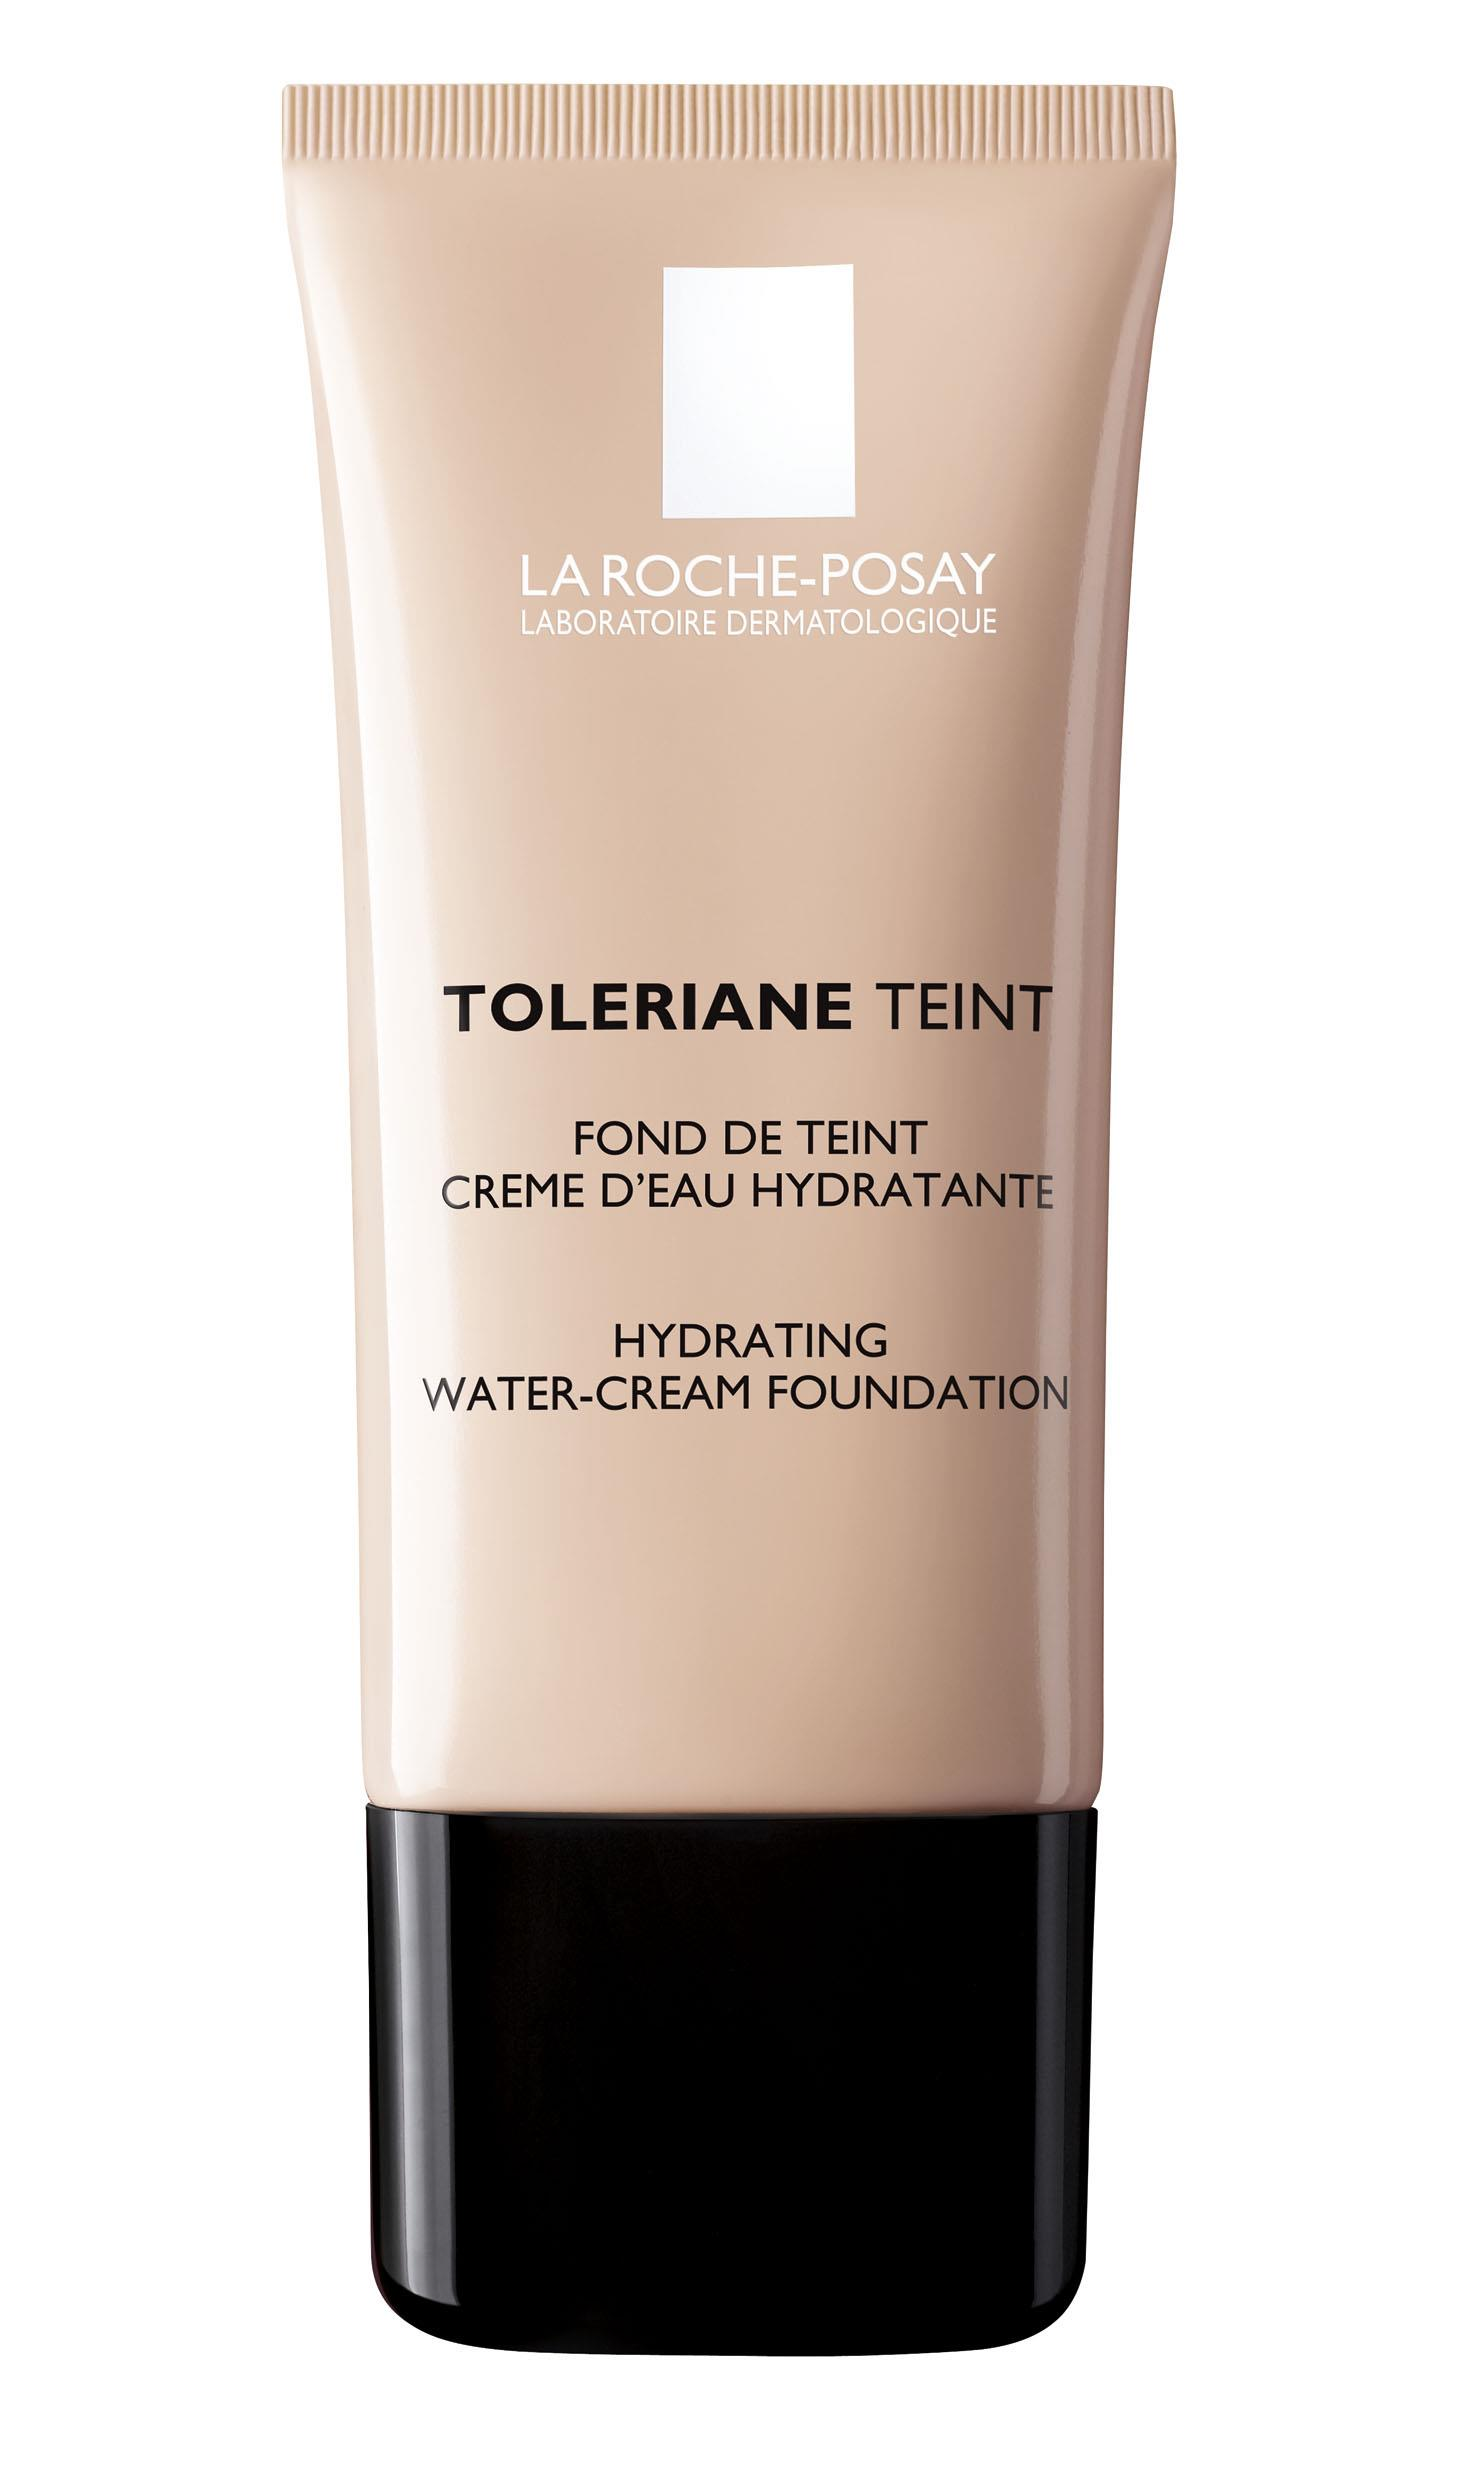 La Roche-Posay Toleriane Teint Fresh Make-up